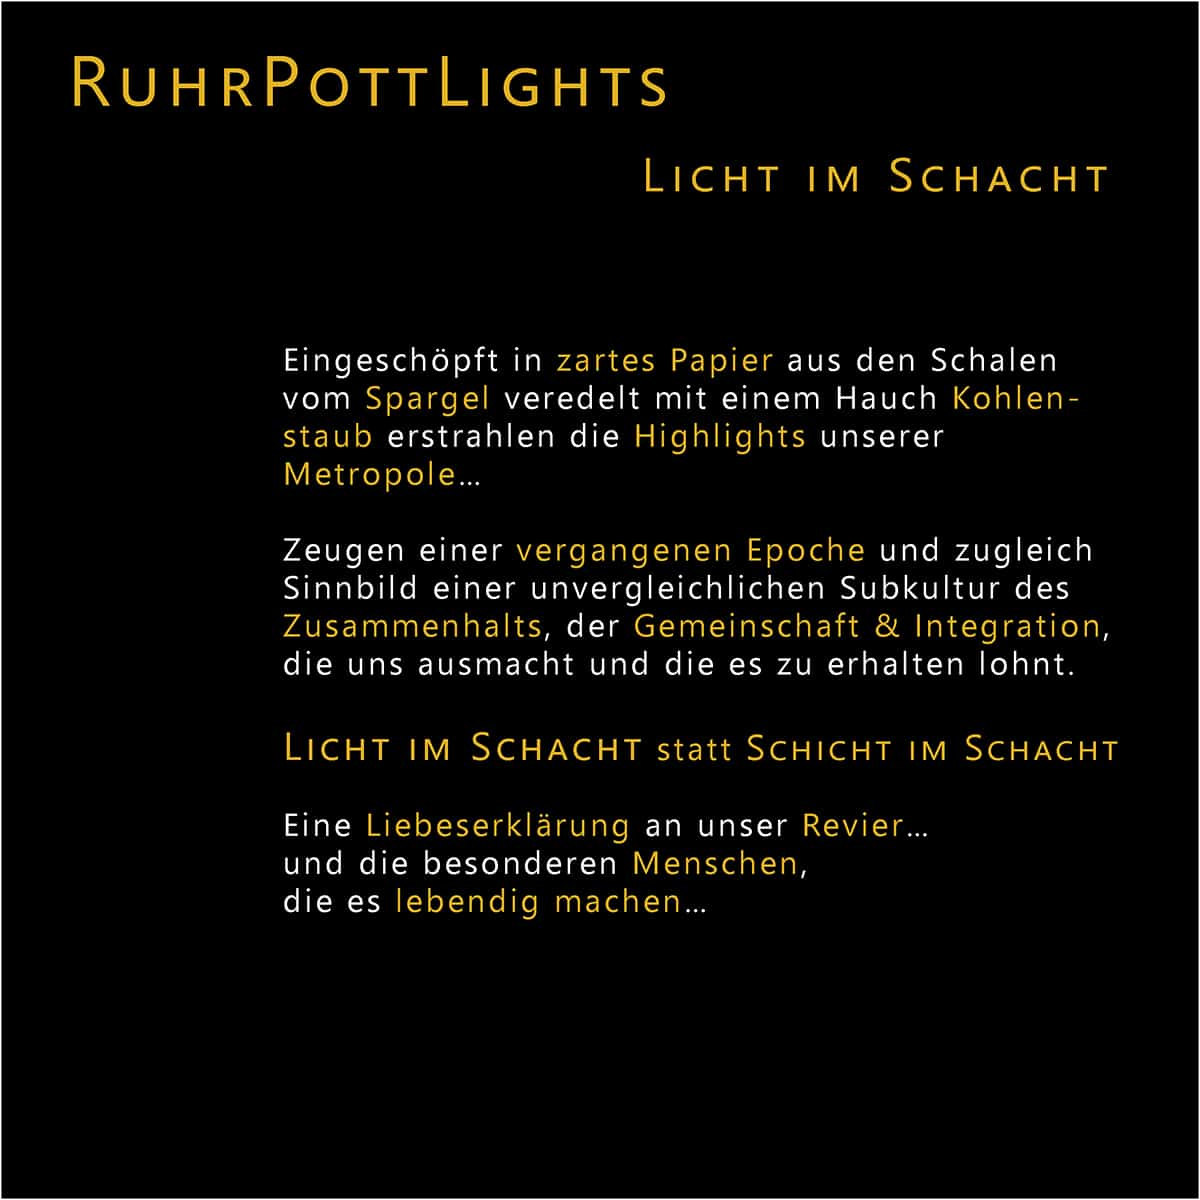 RUHRPOTTLIGHTS